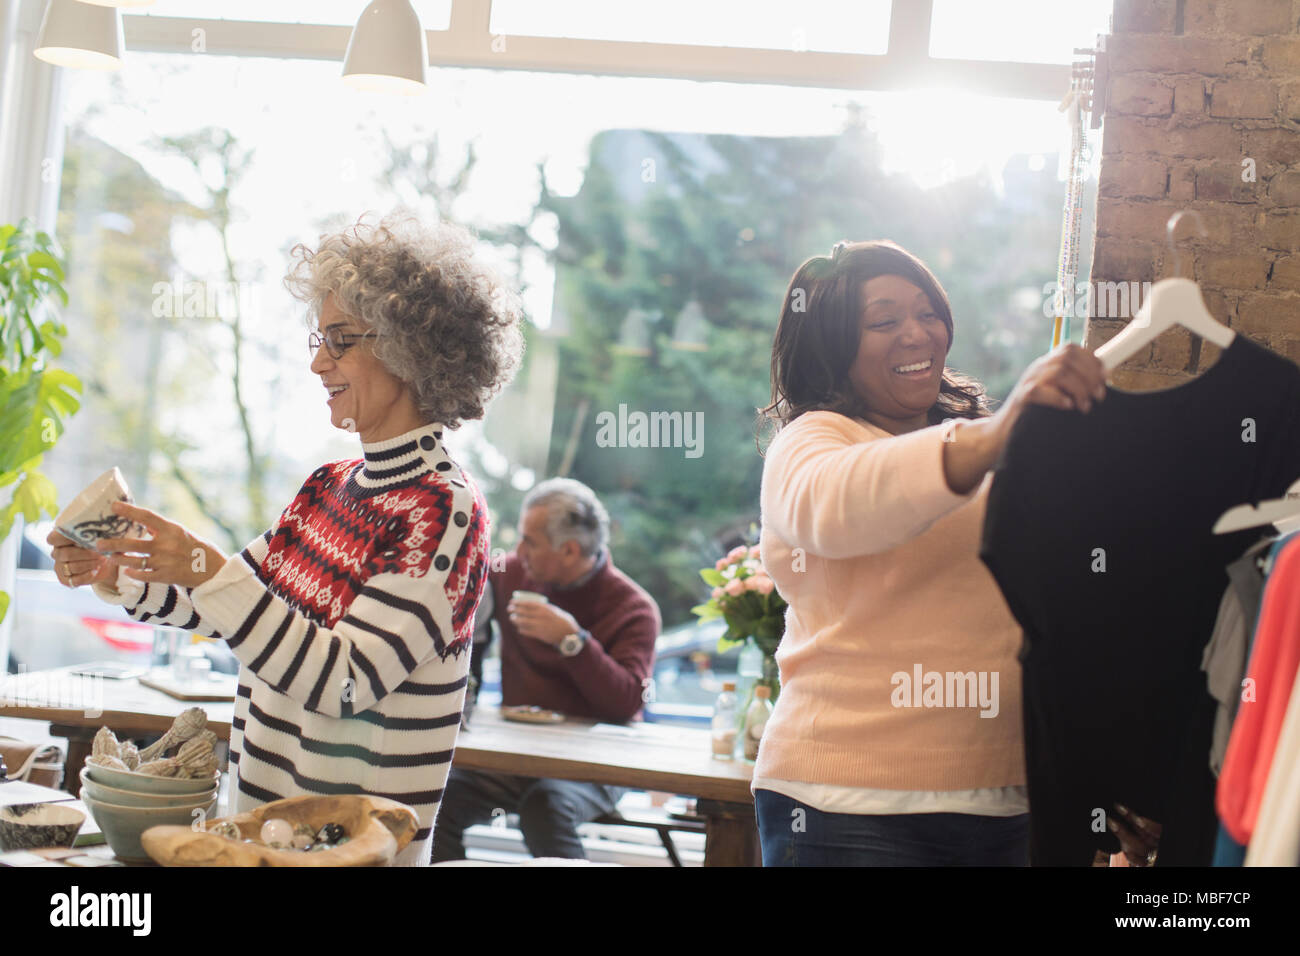 Women shopping in clothing store - Stock Image